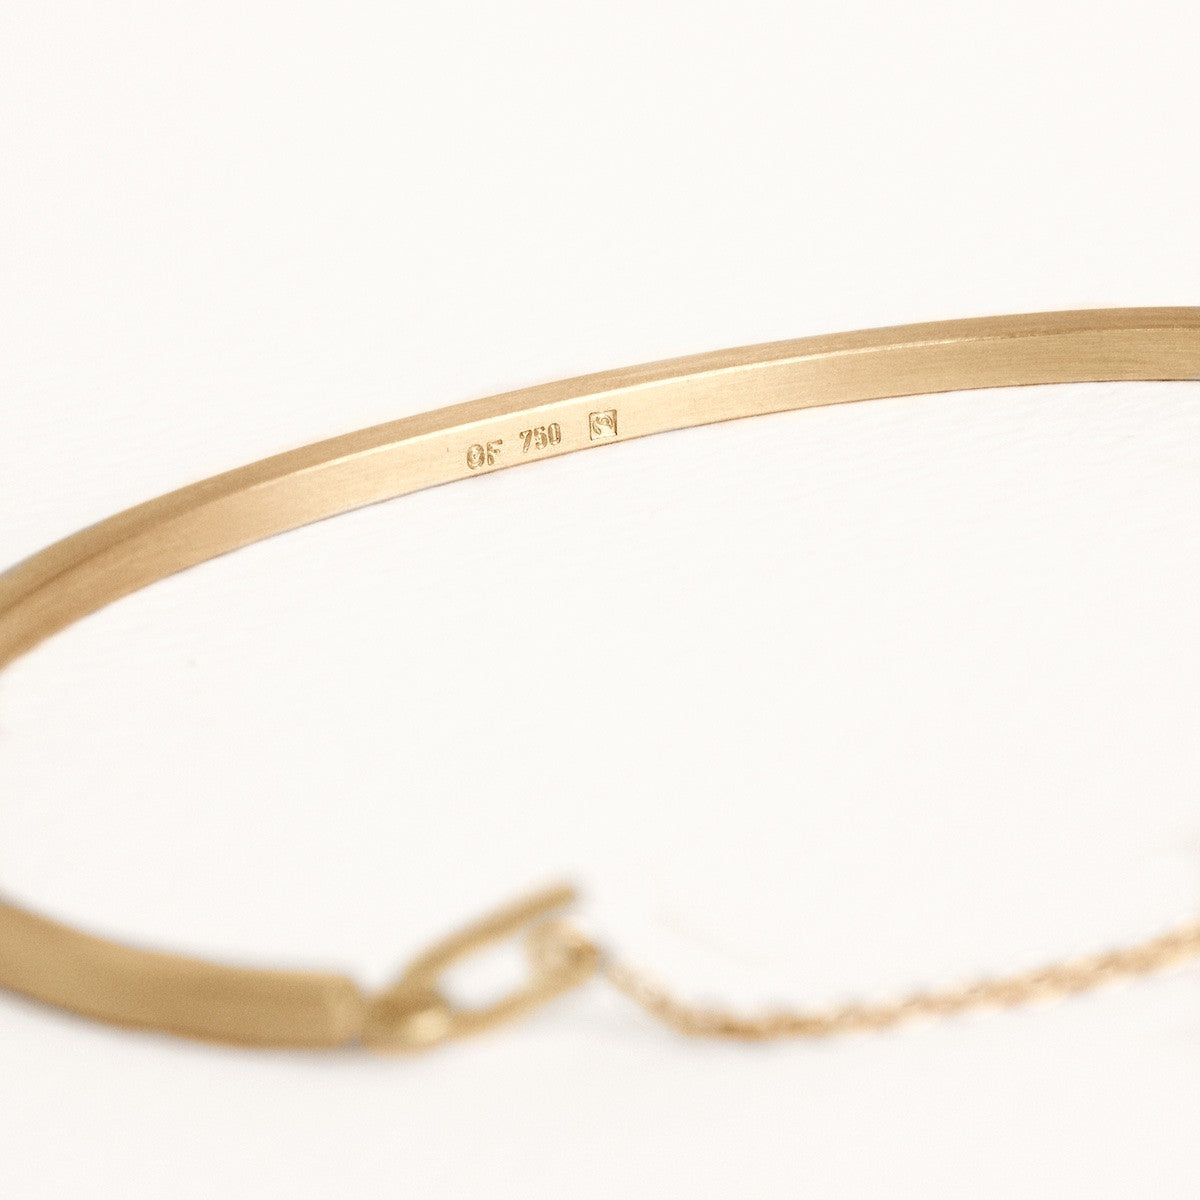 'Kvadrat' Bracelet 18 kt Fairtrade Gold